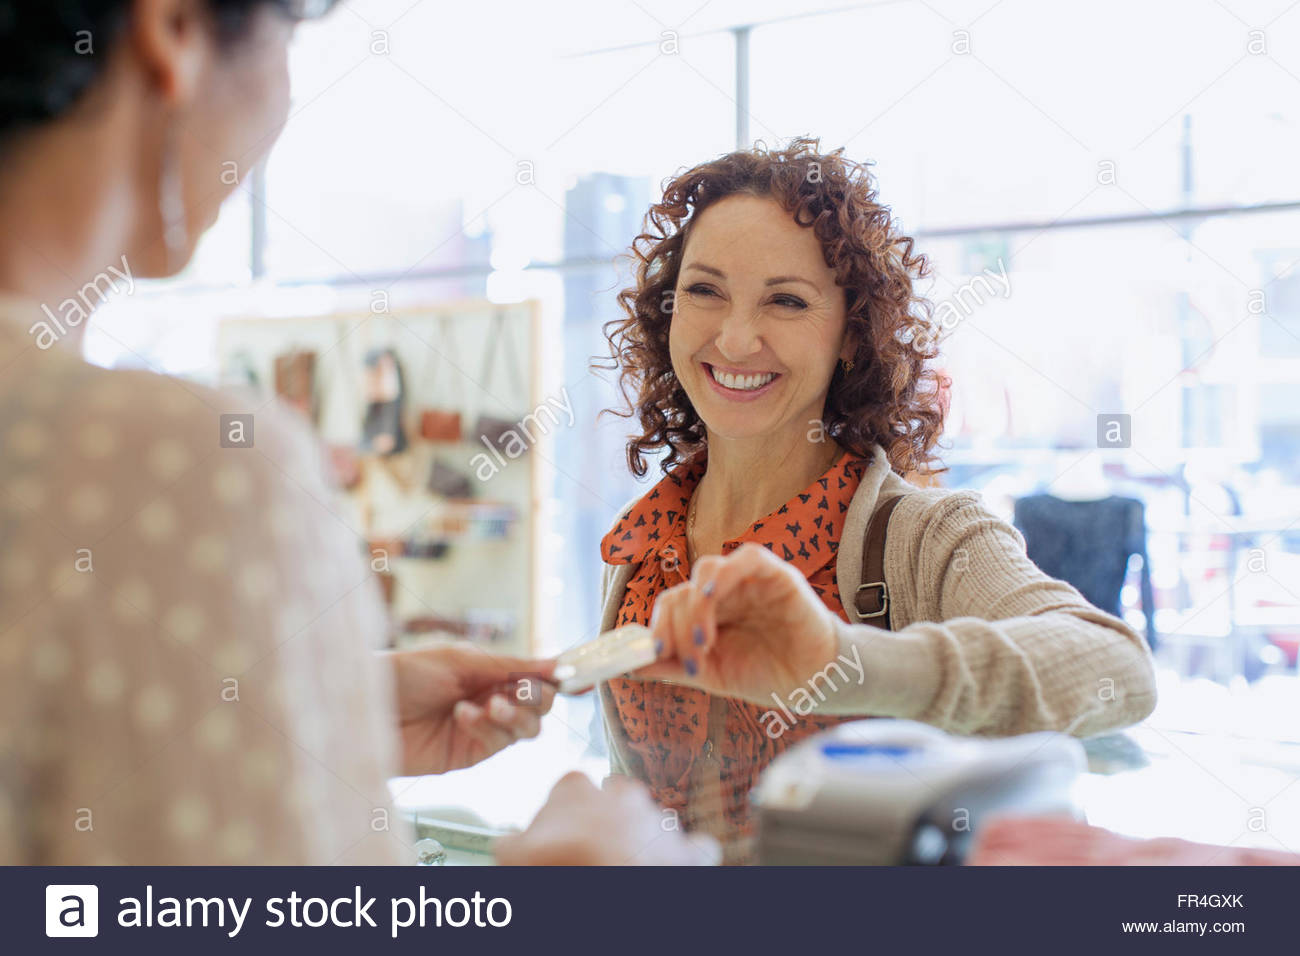 Customer handing credit card to sales clerk for payment. - Stock Image